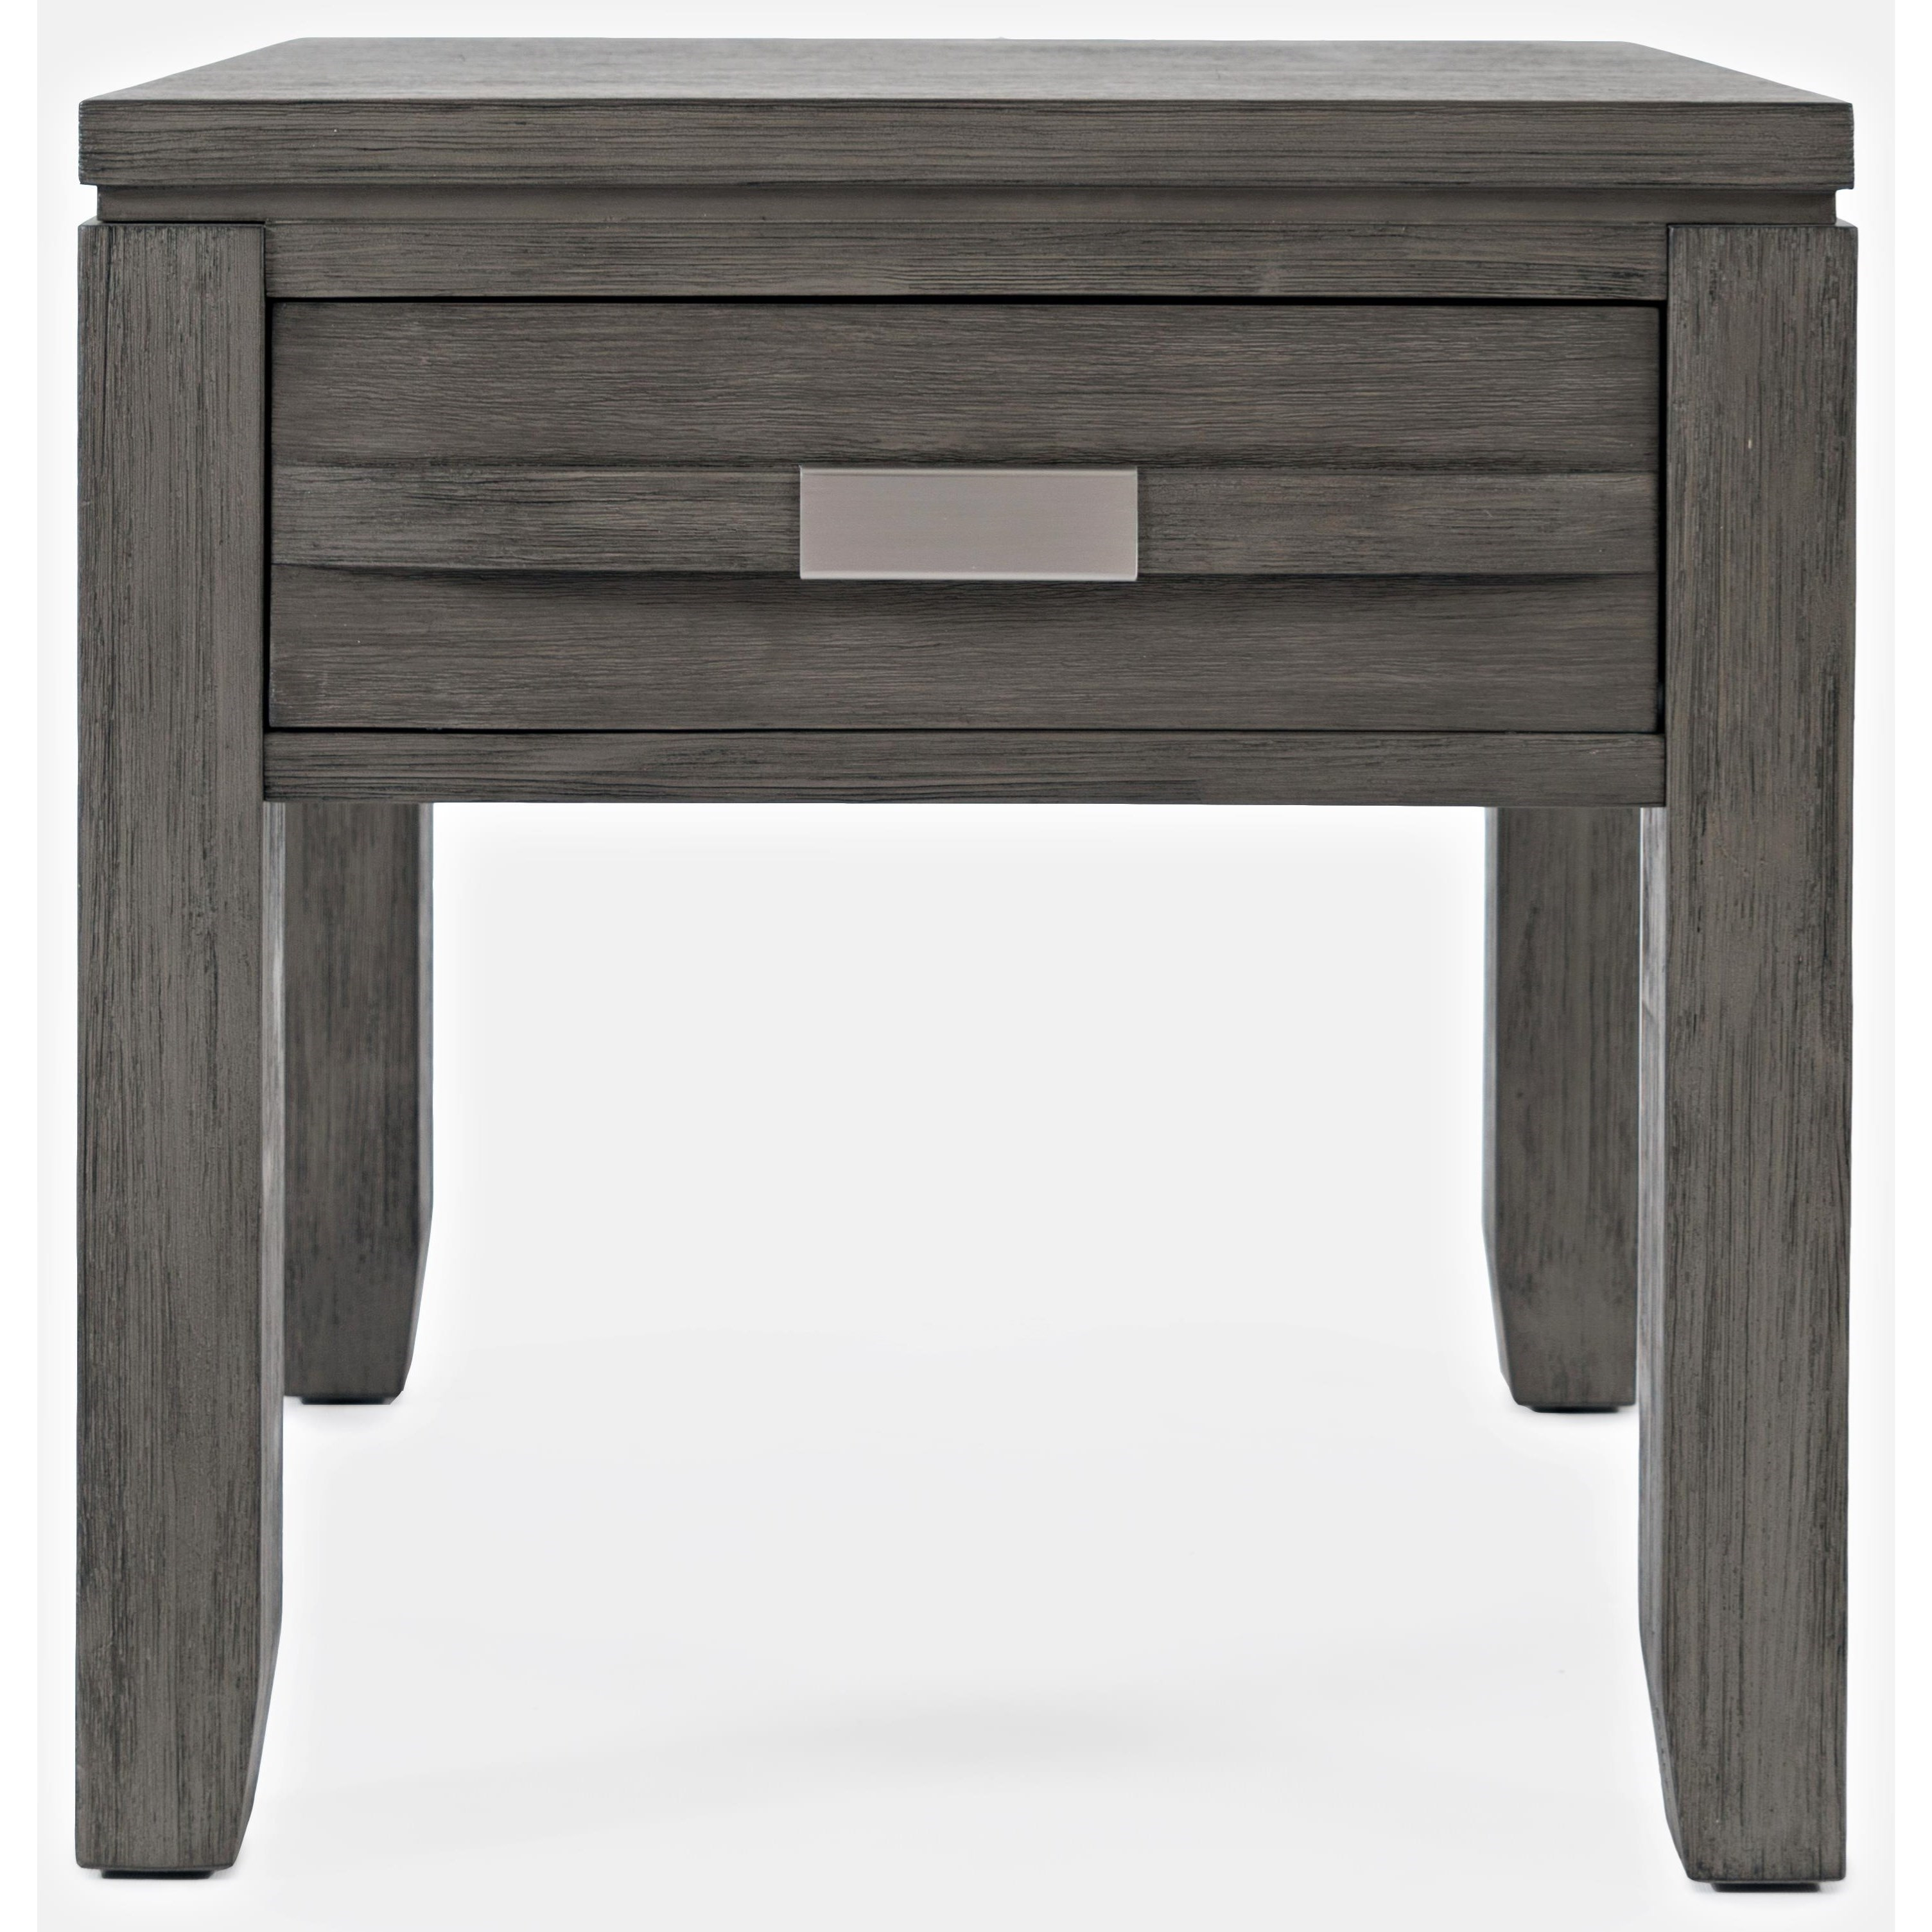 Altamonte  End Table with Drawer by Jofran at Pilgrim Furniture City